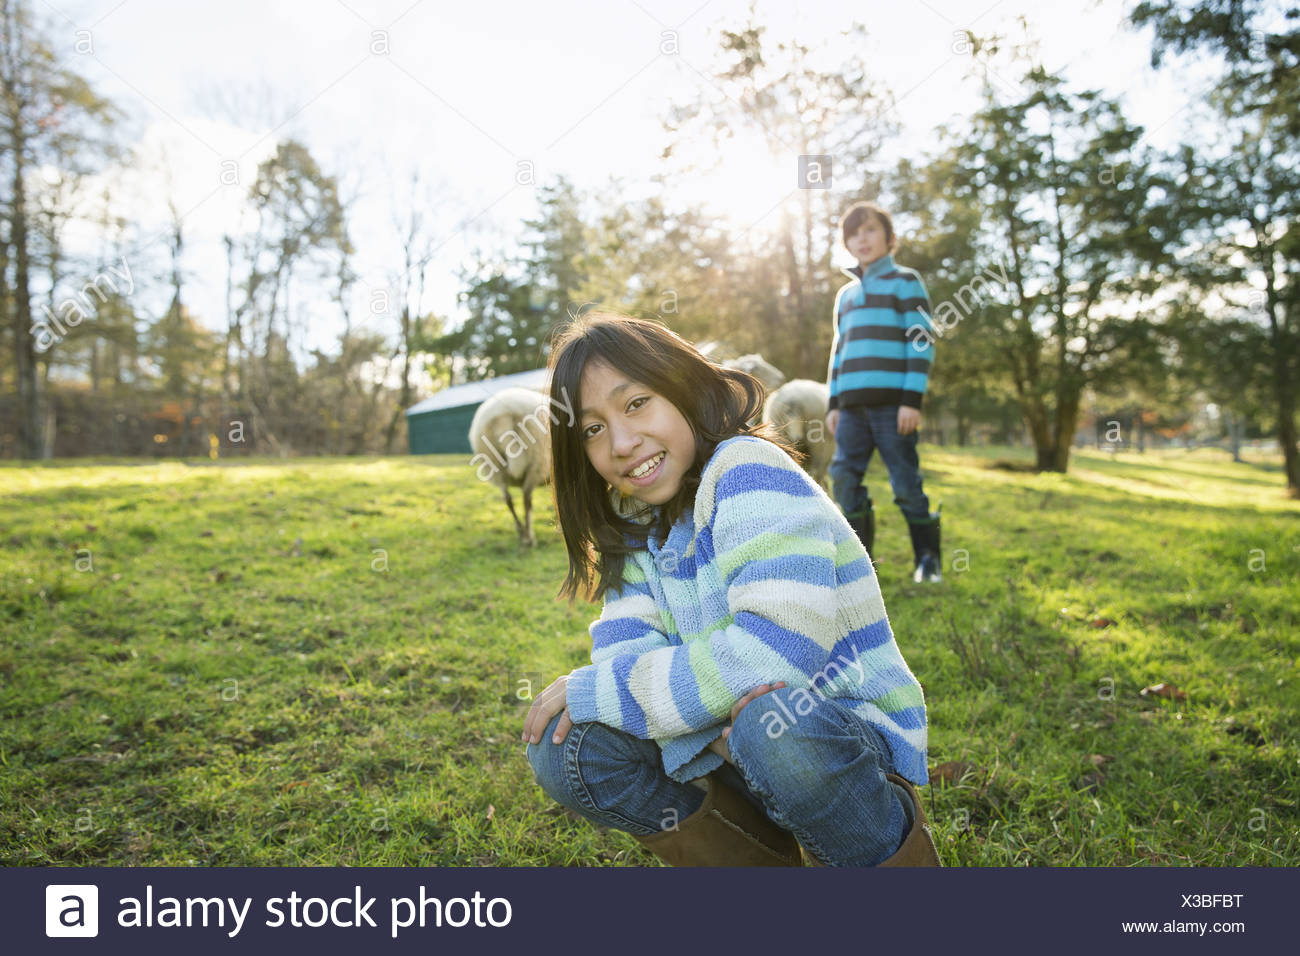 Two children at an animal sanctuary, in an animal enclosure with a group of sheep. - Stock Image